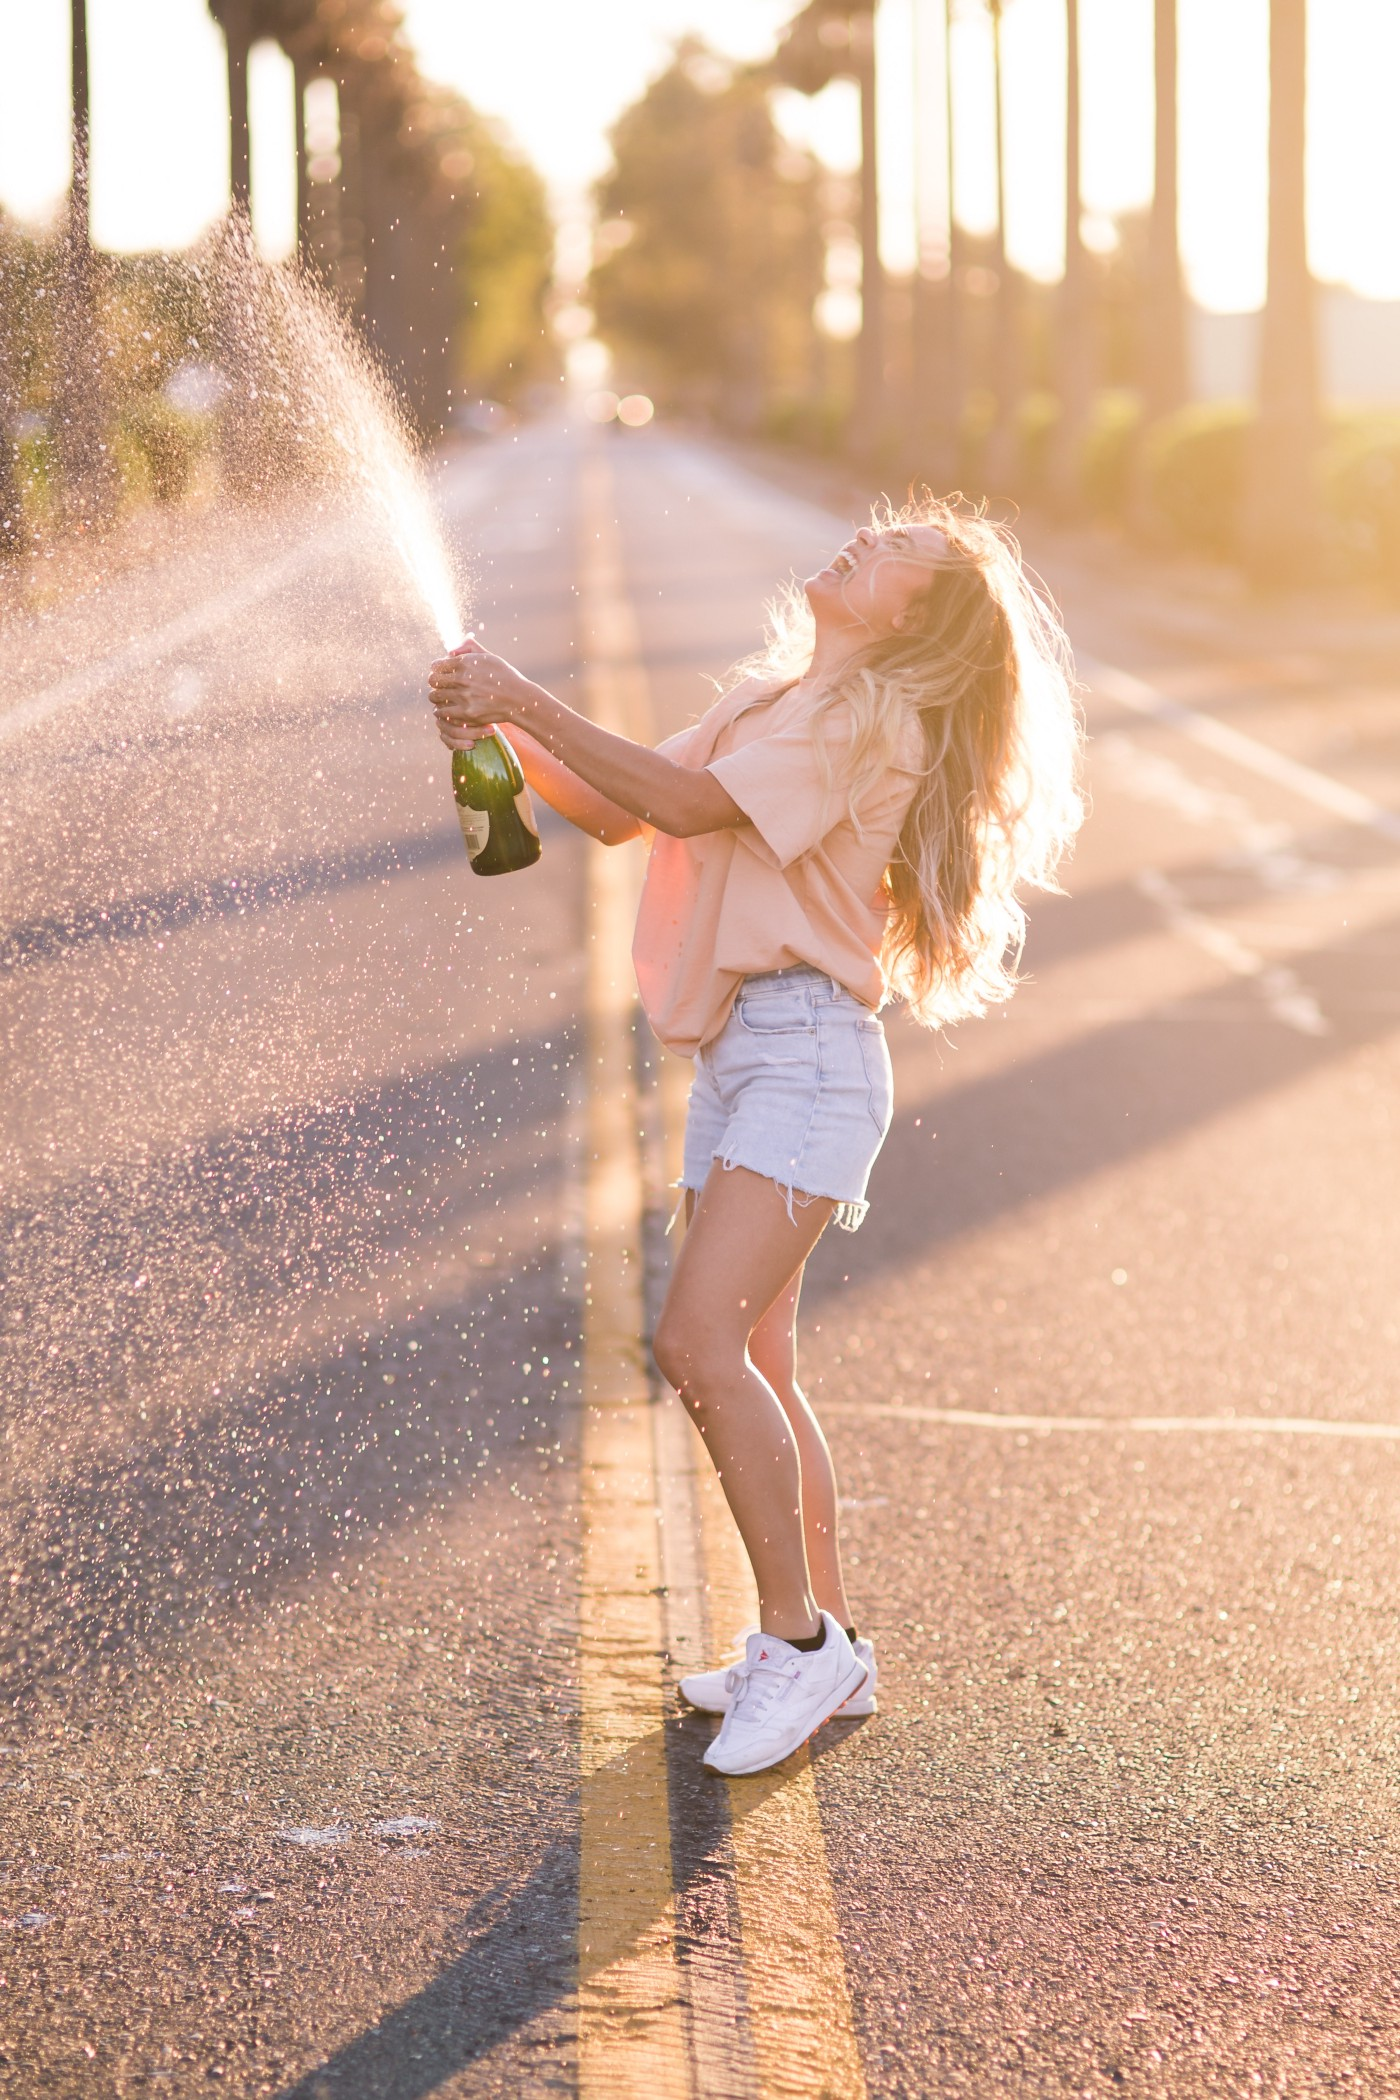 On a sunshiny day in the middle of a road a young wholesome woman in cut off shorts sprays a bottle of champagne in triumphant happiness.